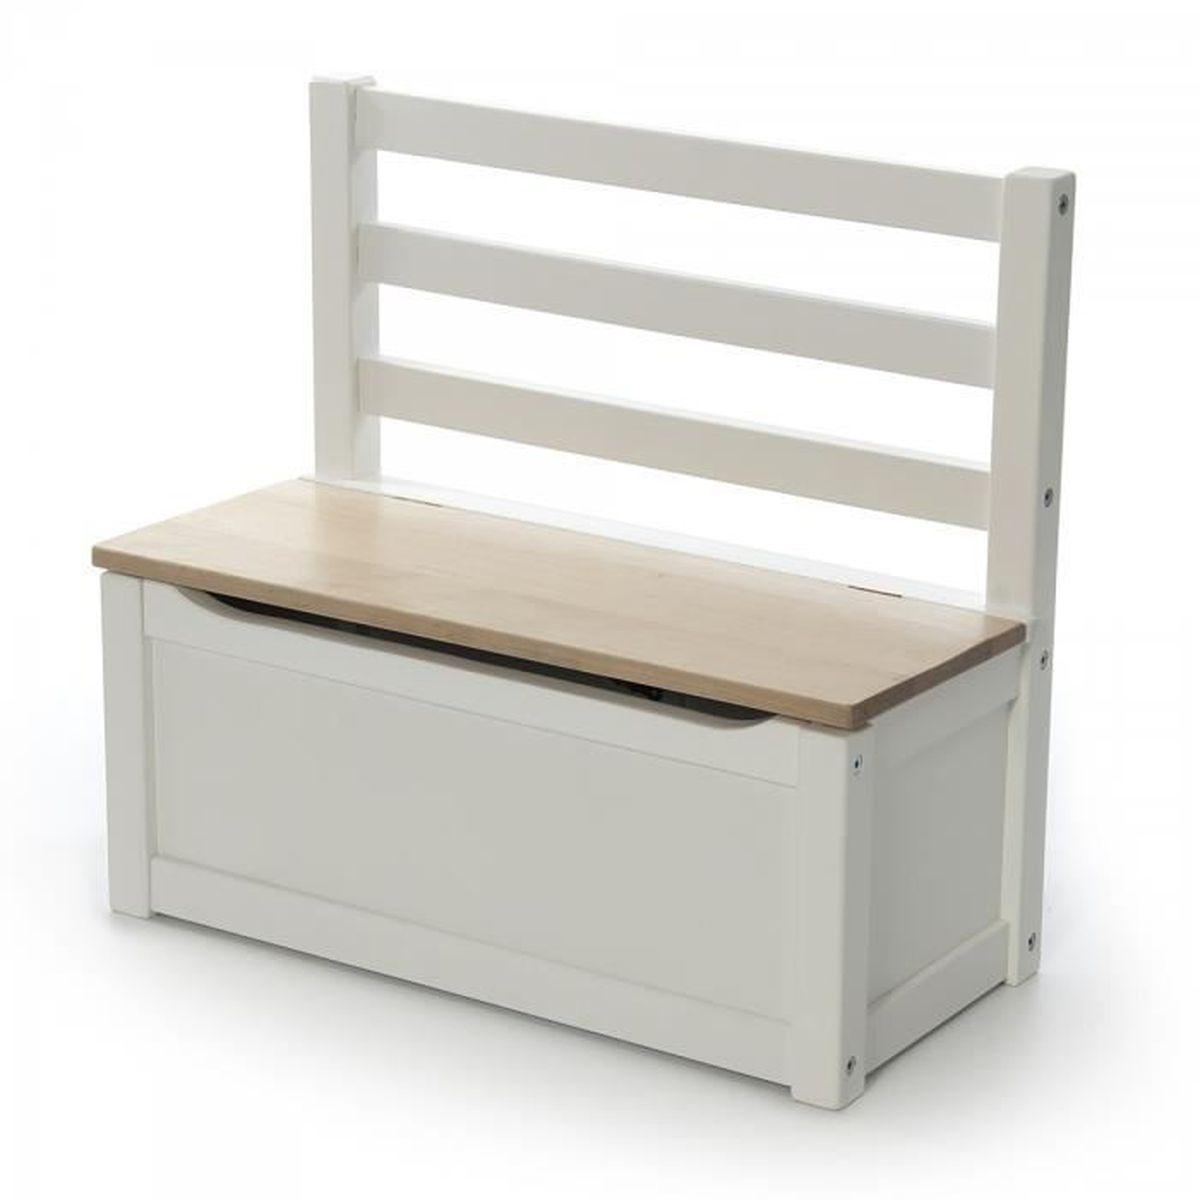 coffre de rangement pour enfants petit banc d co. Black Bedroom Furniture Sets. Home Design Ideas